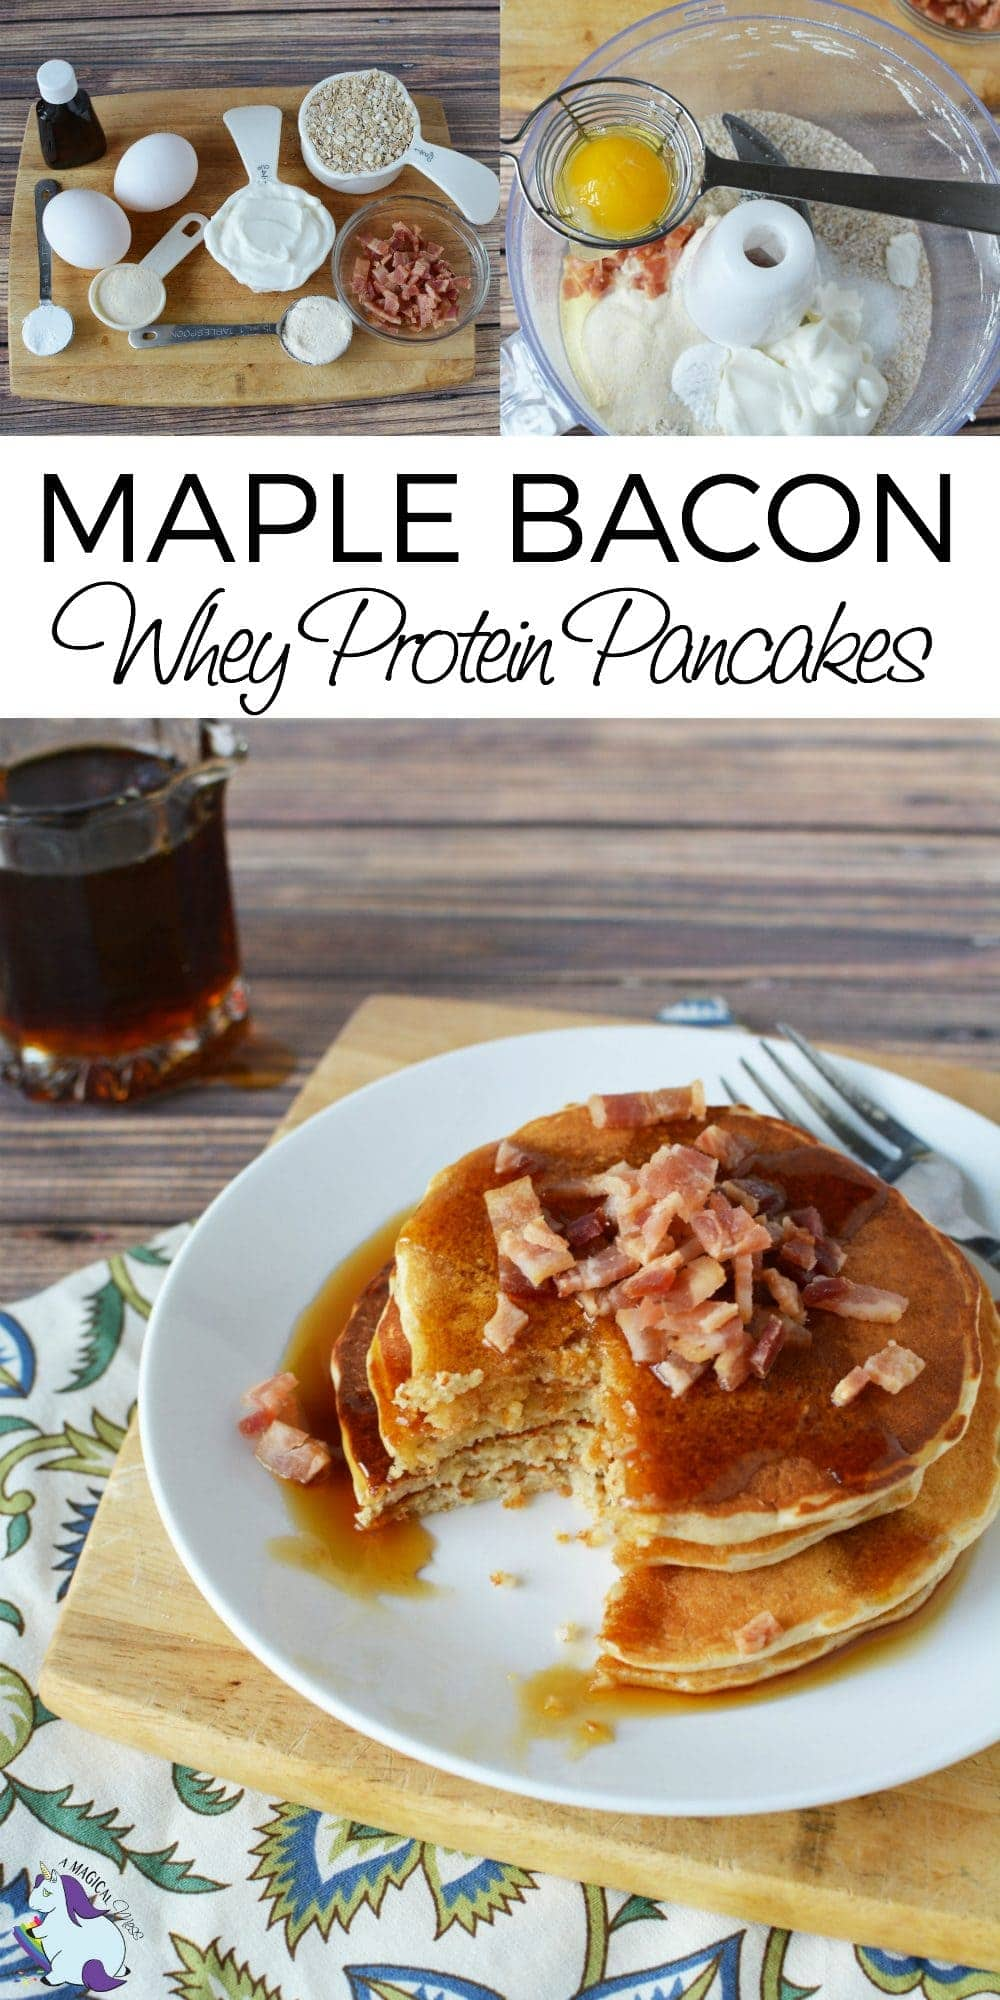 Maple Bacon Whey Protein Pancakes Recipe